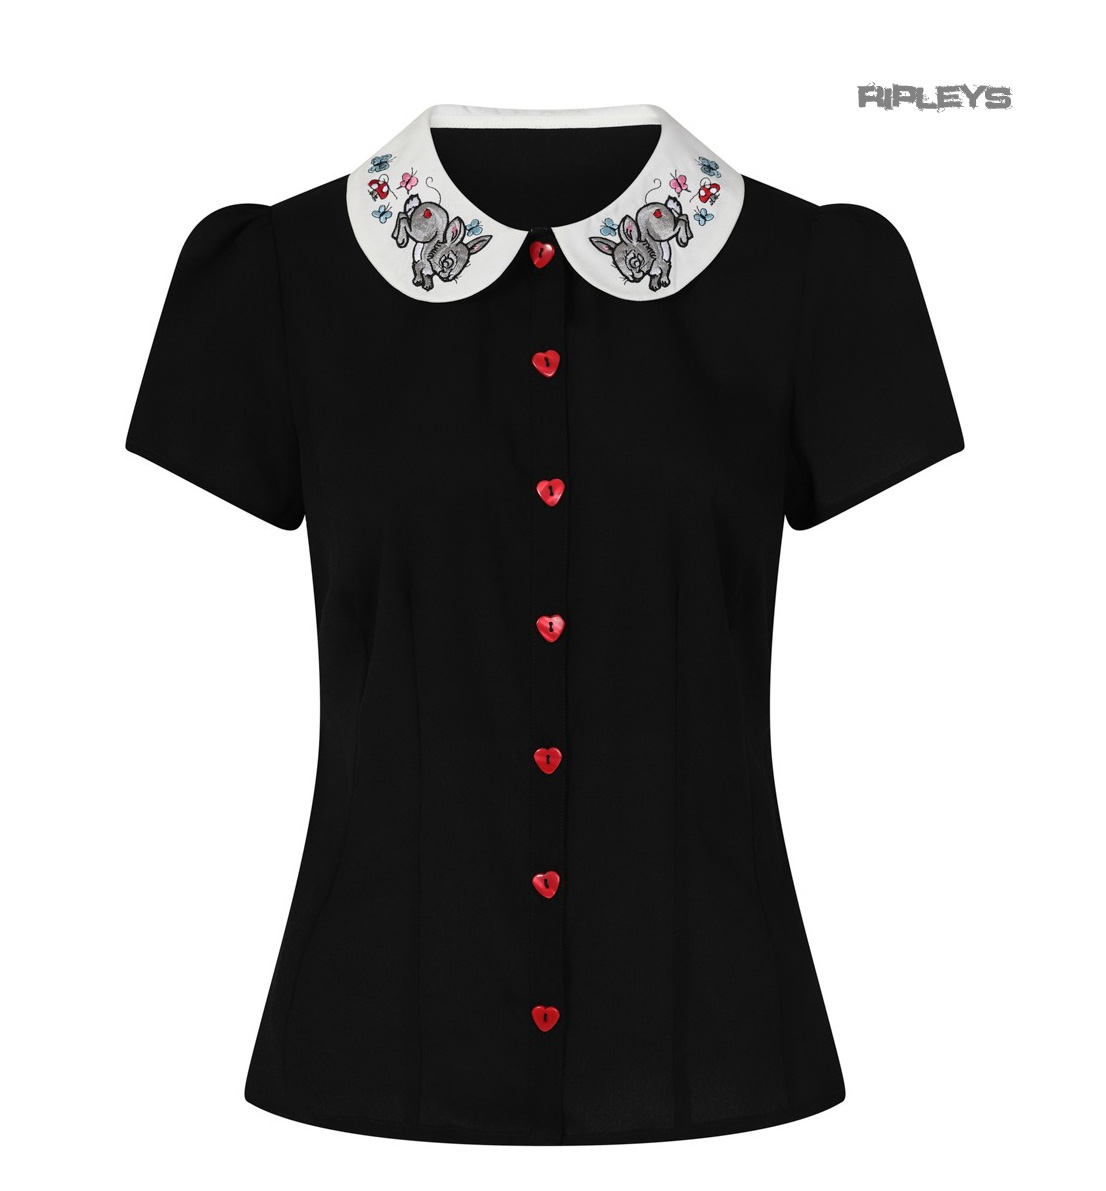 Hell-Bunny-Shirt-Top-Black-Blouse-THUMPER-Easter-Rabbit-Flowers-All-Sizes thumbnail 4